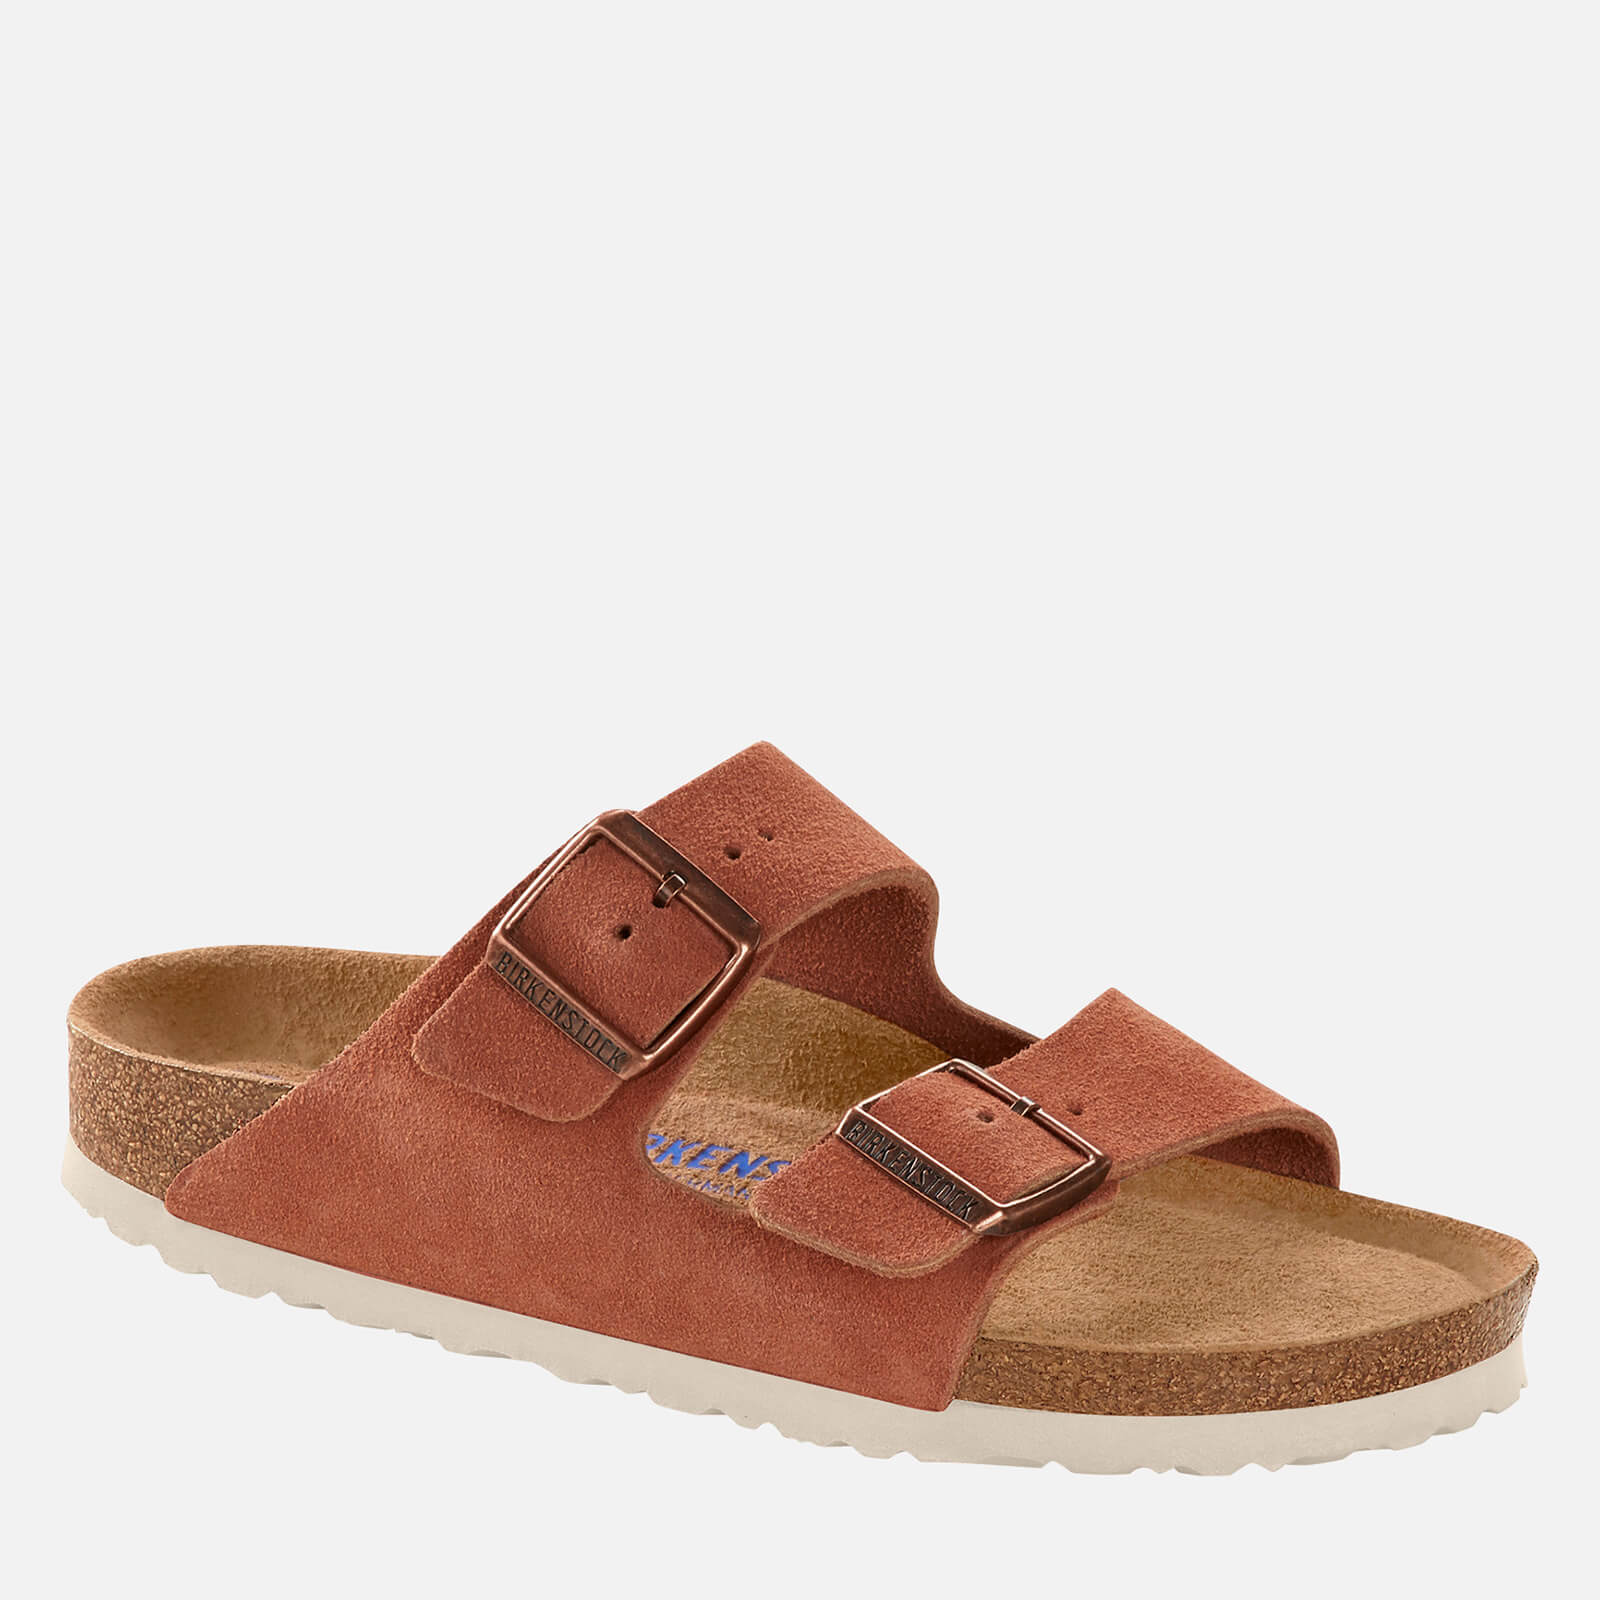 Birkenstock Womens Arizona Sfb Suede Double Strap Sandals Earth Red Eu 40 Uk 7